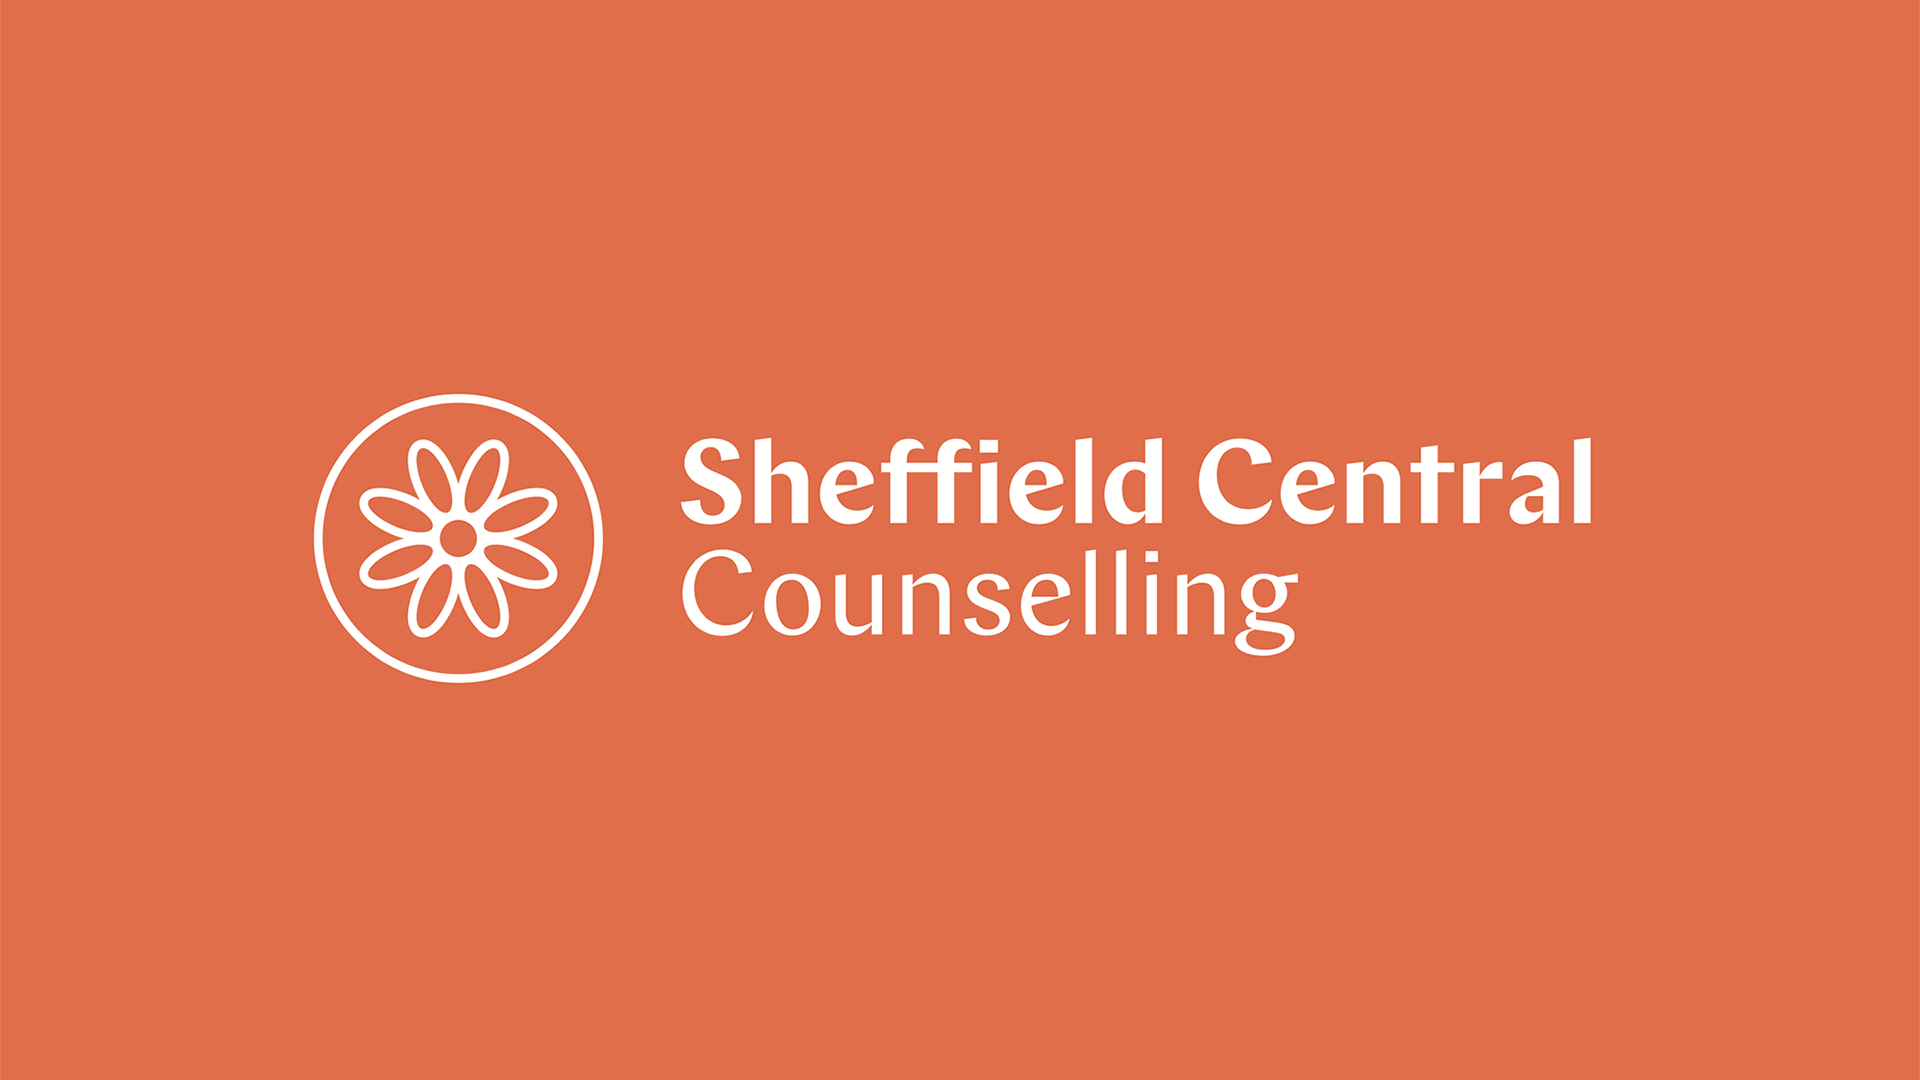 image for Sheffield Central Counselling project